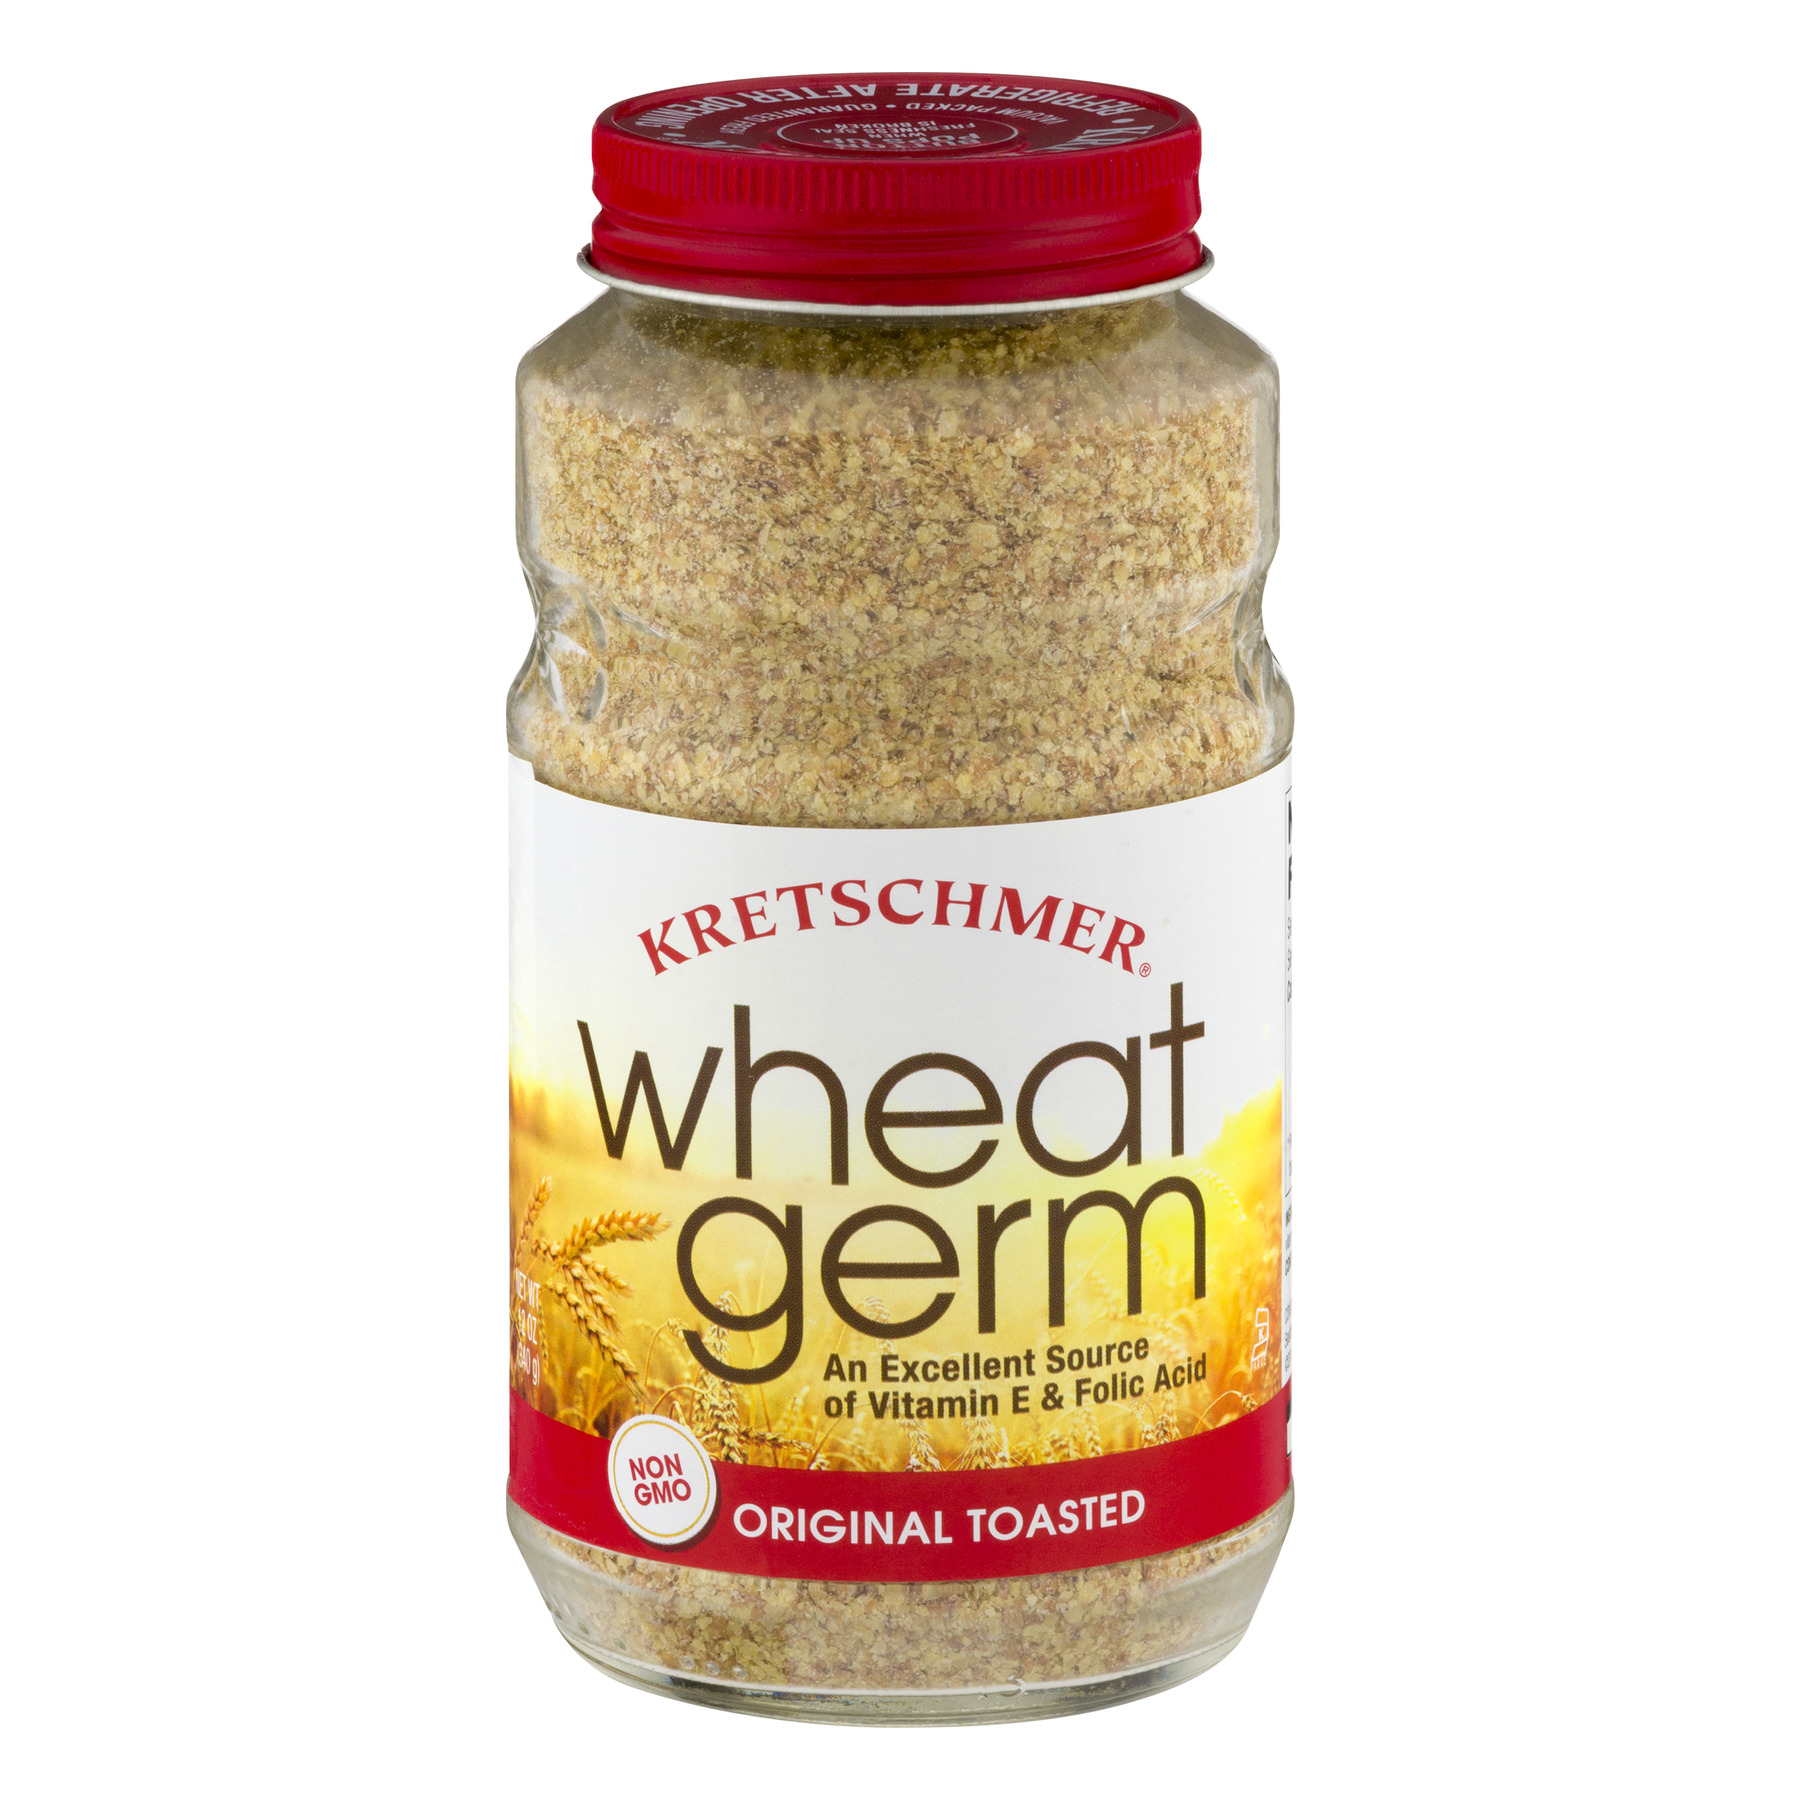 Kretschmer Original Toasted Wheat Germ, 12 oz